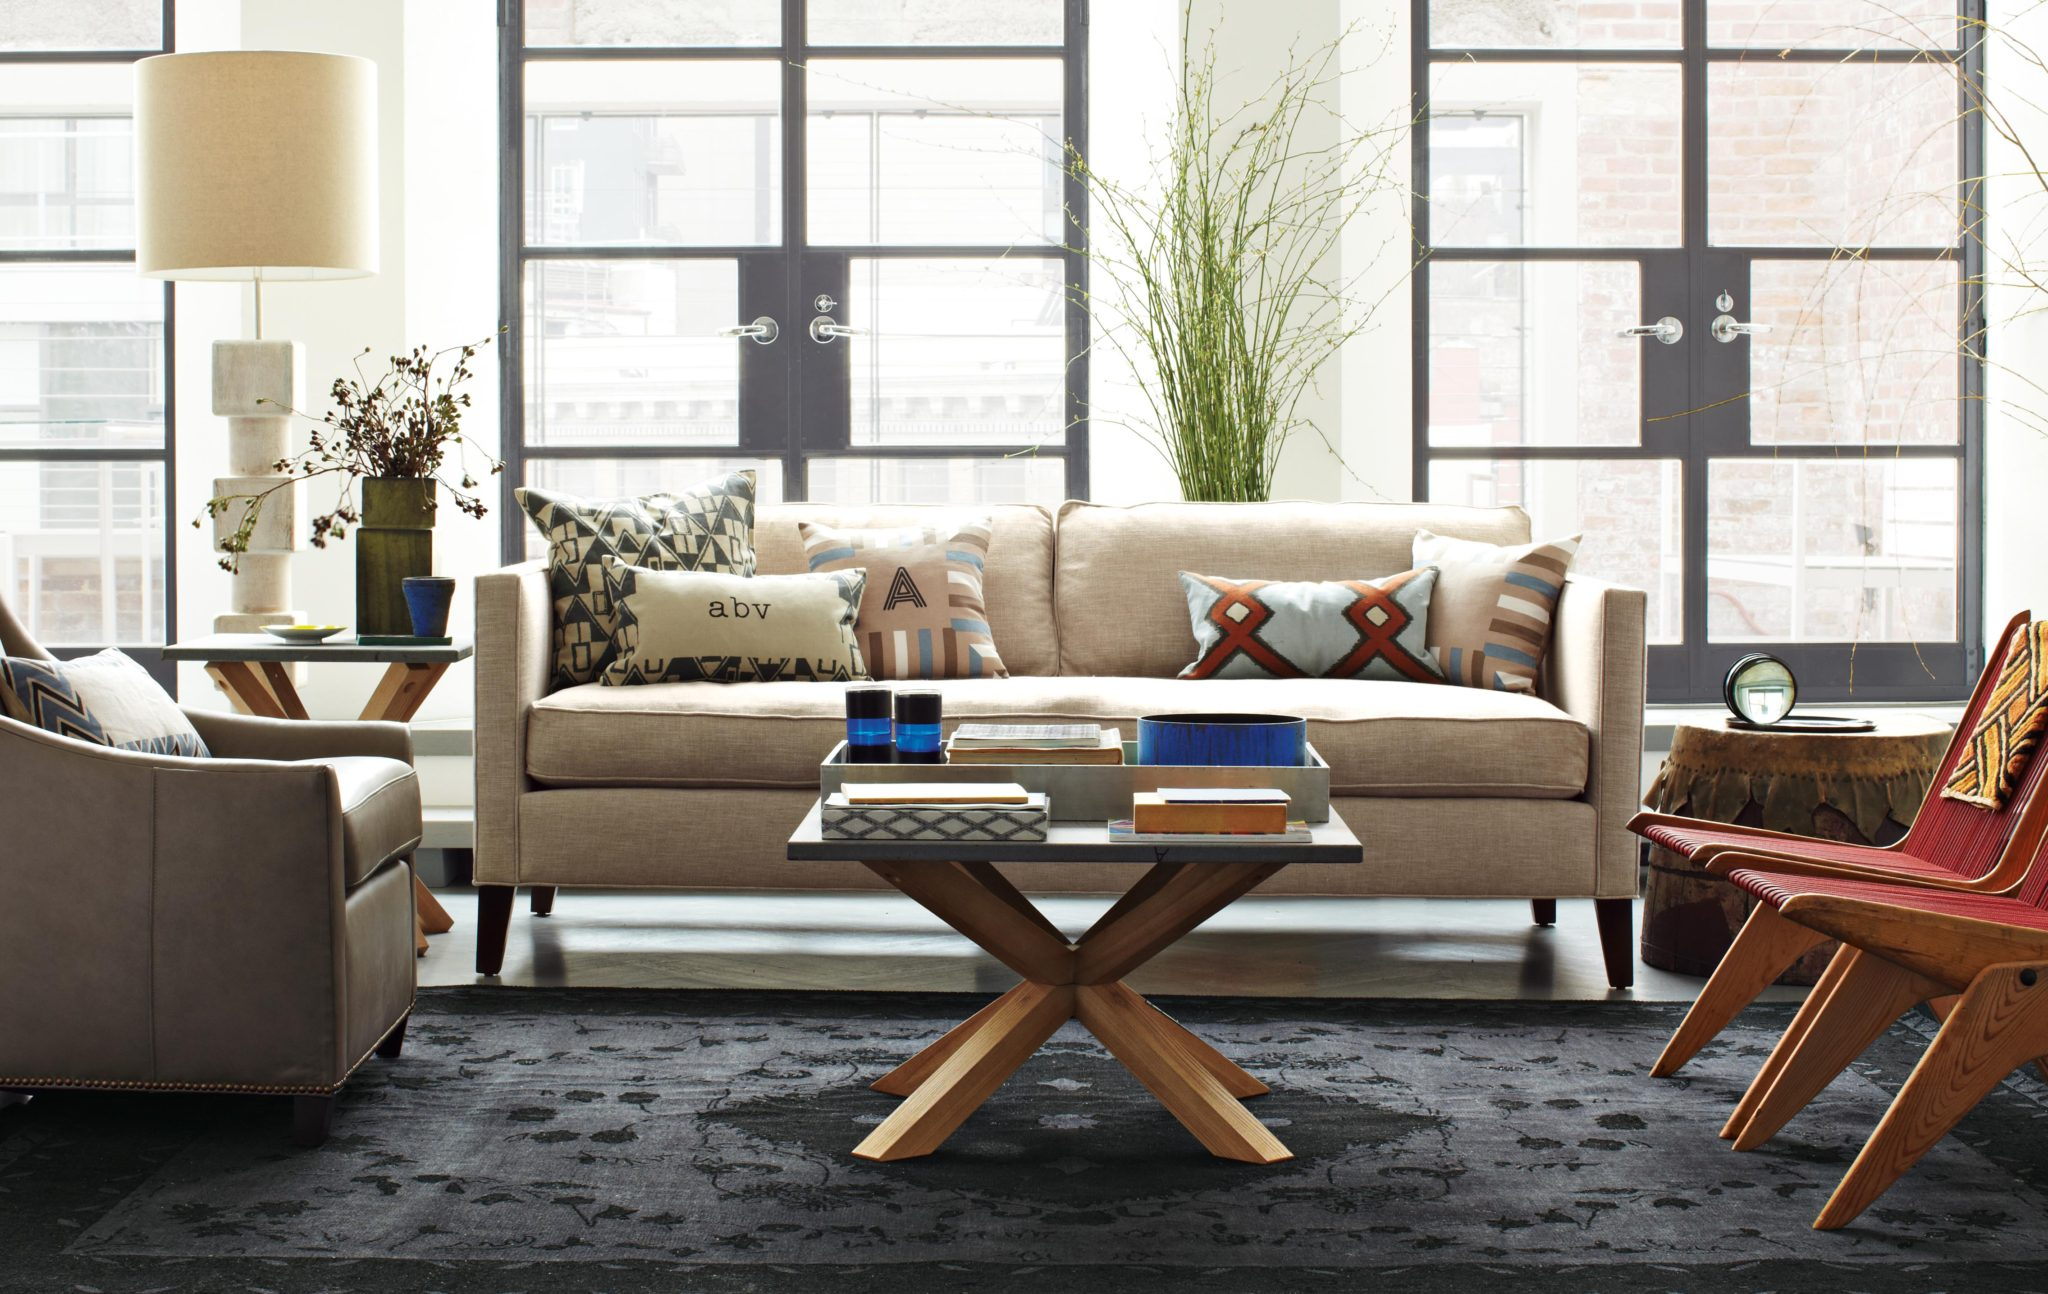 West Elm and Pottery Barn to open in Australia  The